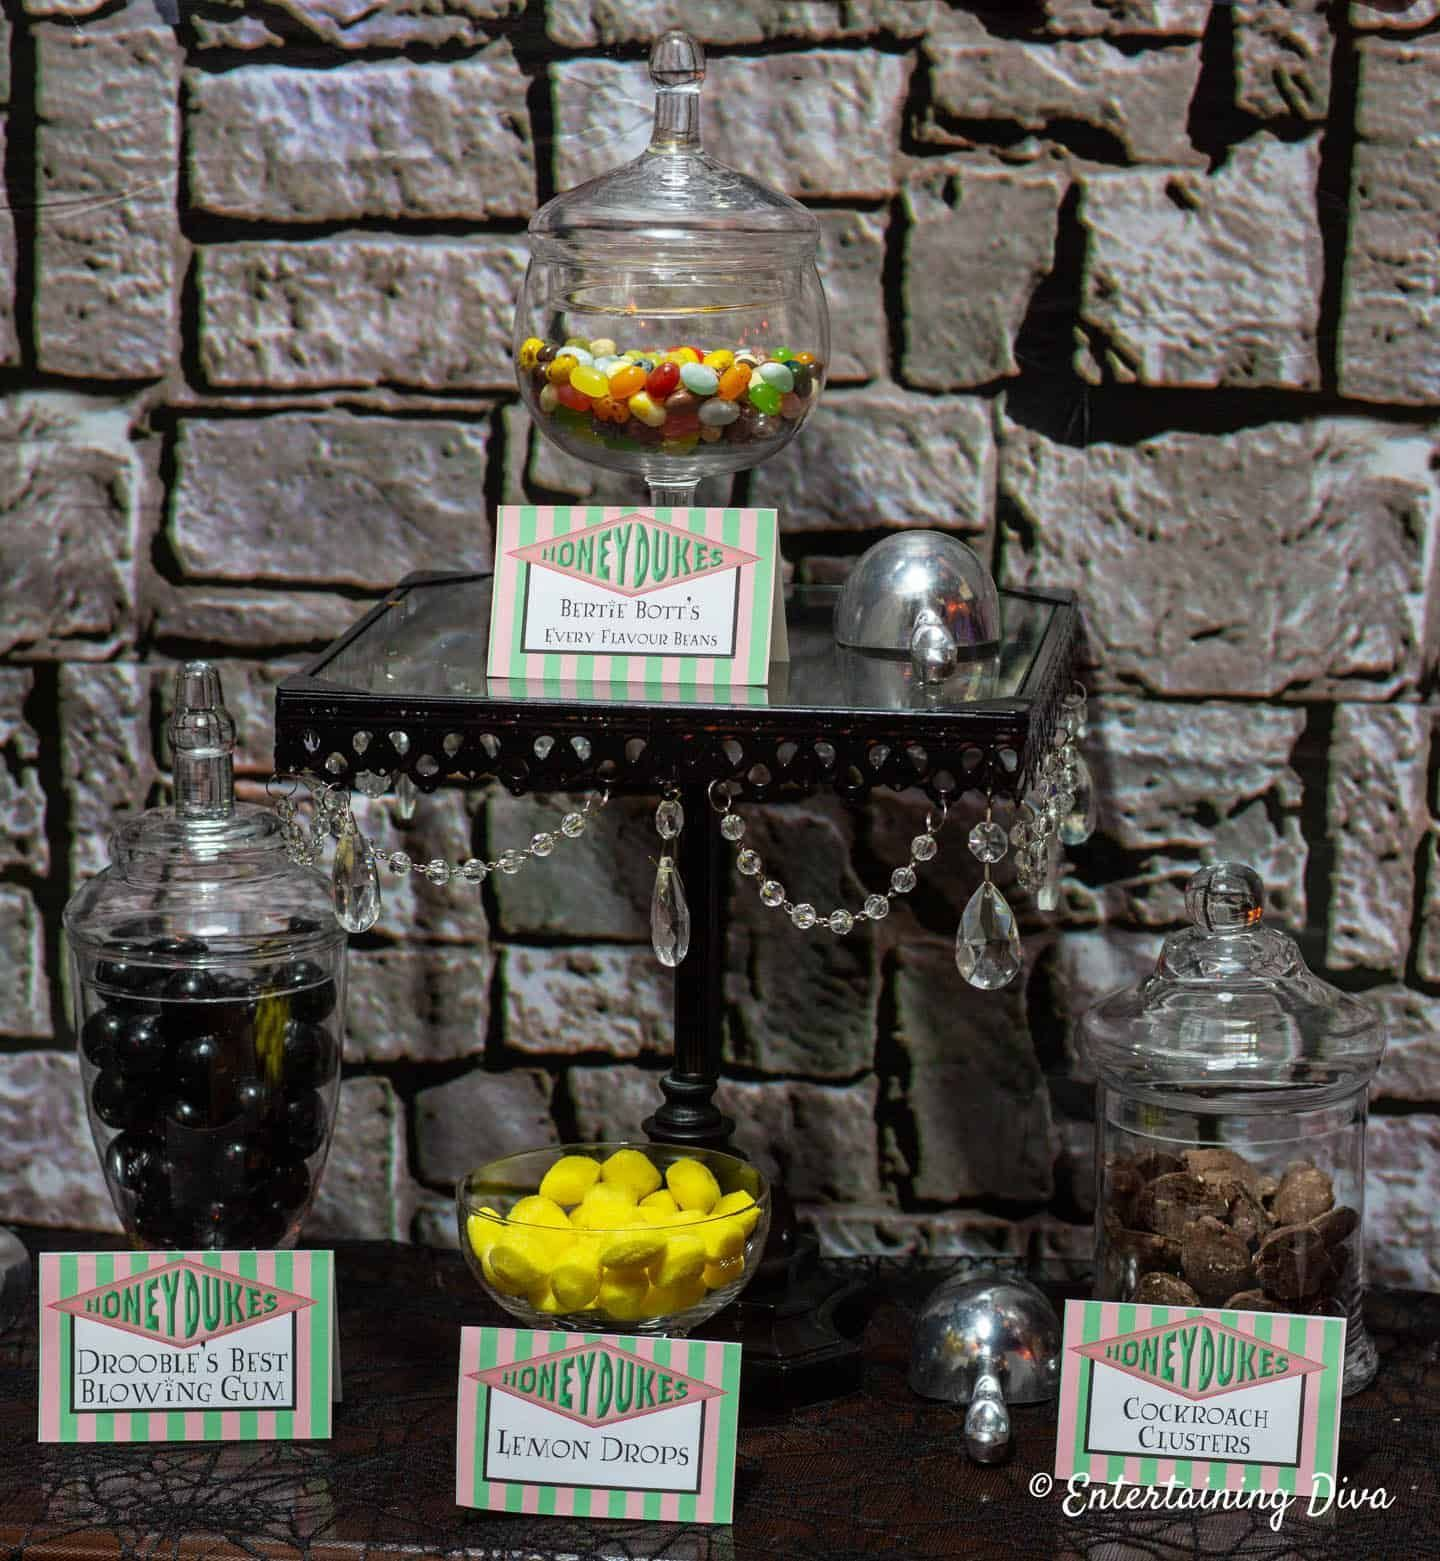 These Harry Potter party ideas. I love this Honeydukes candy bar with printable signs. #entertainingdiva #harrypotter #harrypotterparty #halloween #birthdayparty #partyideas #diyparties